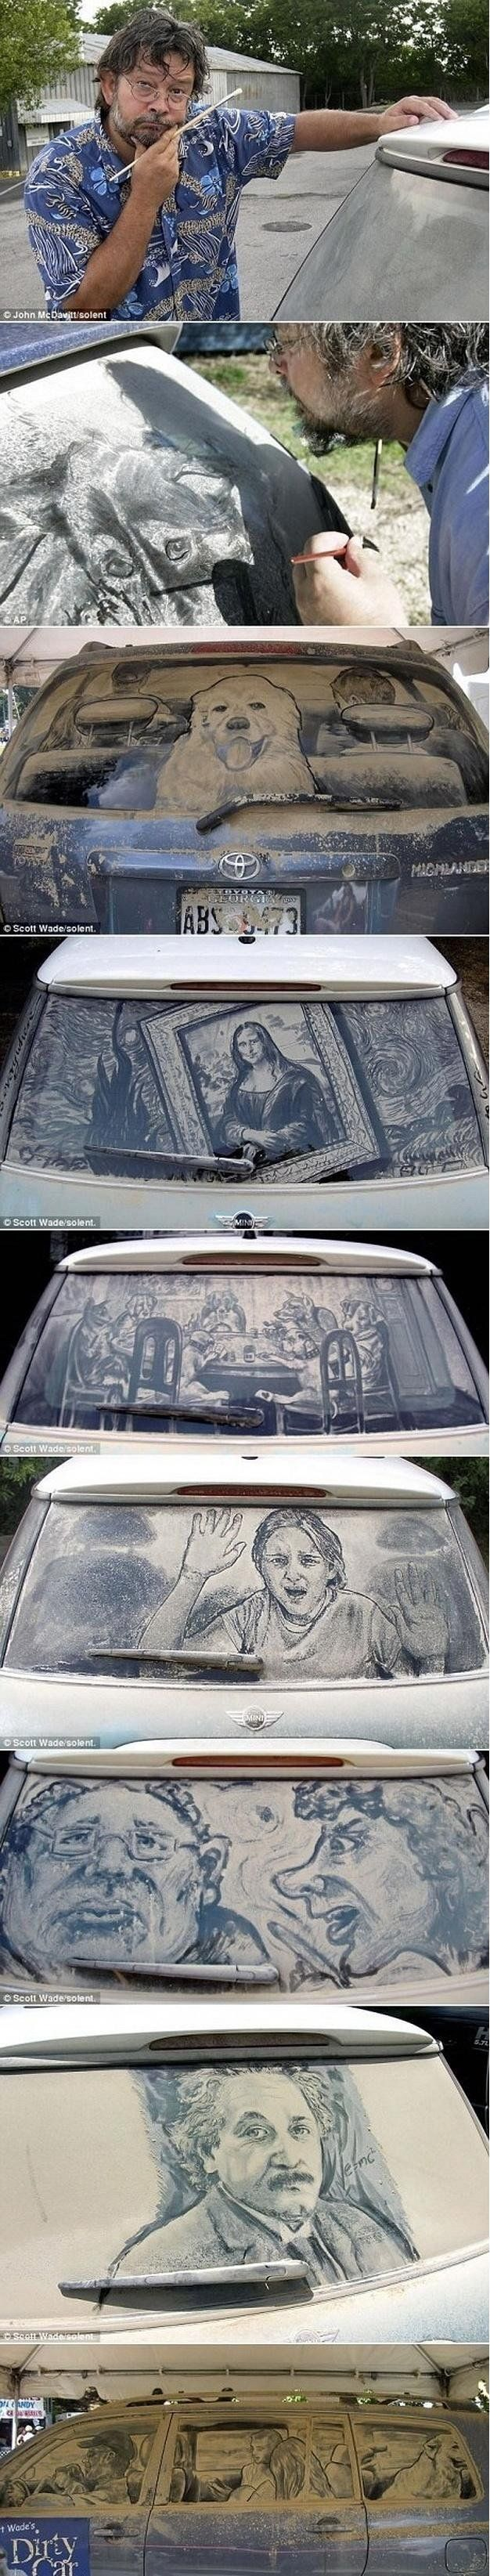 Dirt Art?!. Who knew you could do something so amazing with the grim on your cars window?. o_O